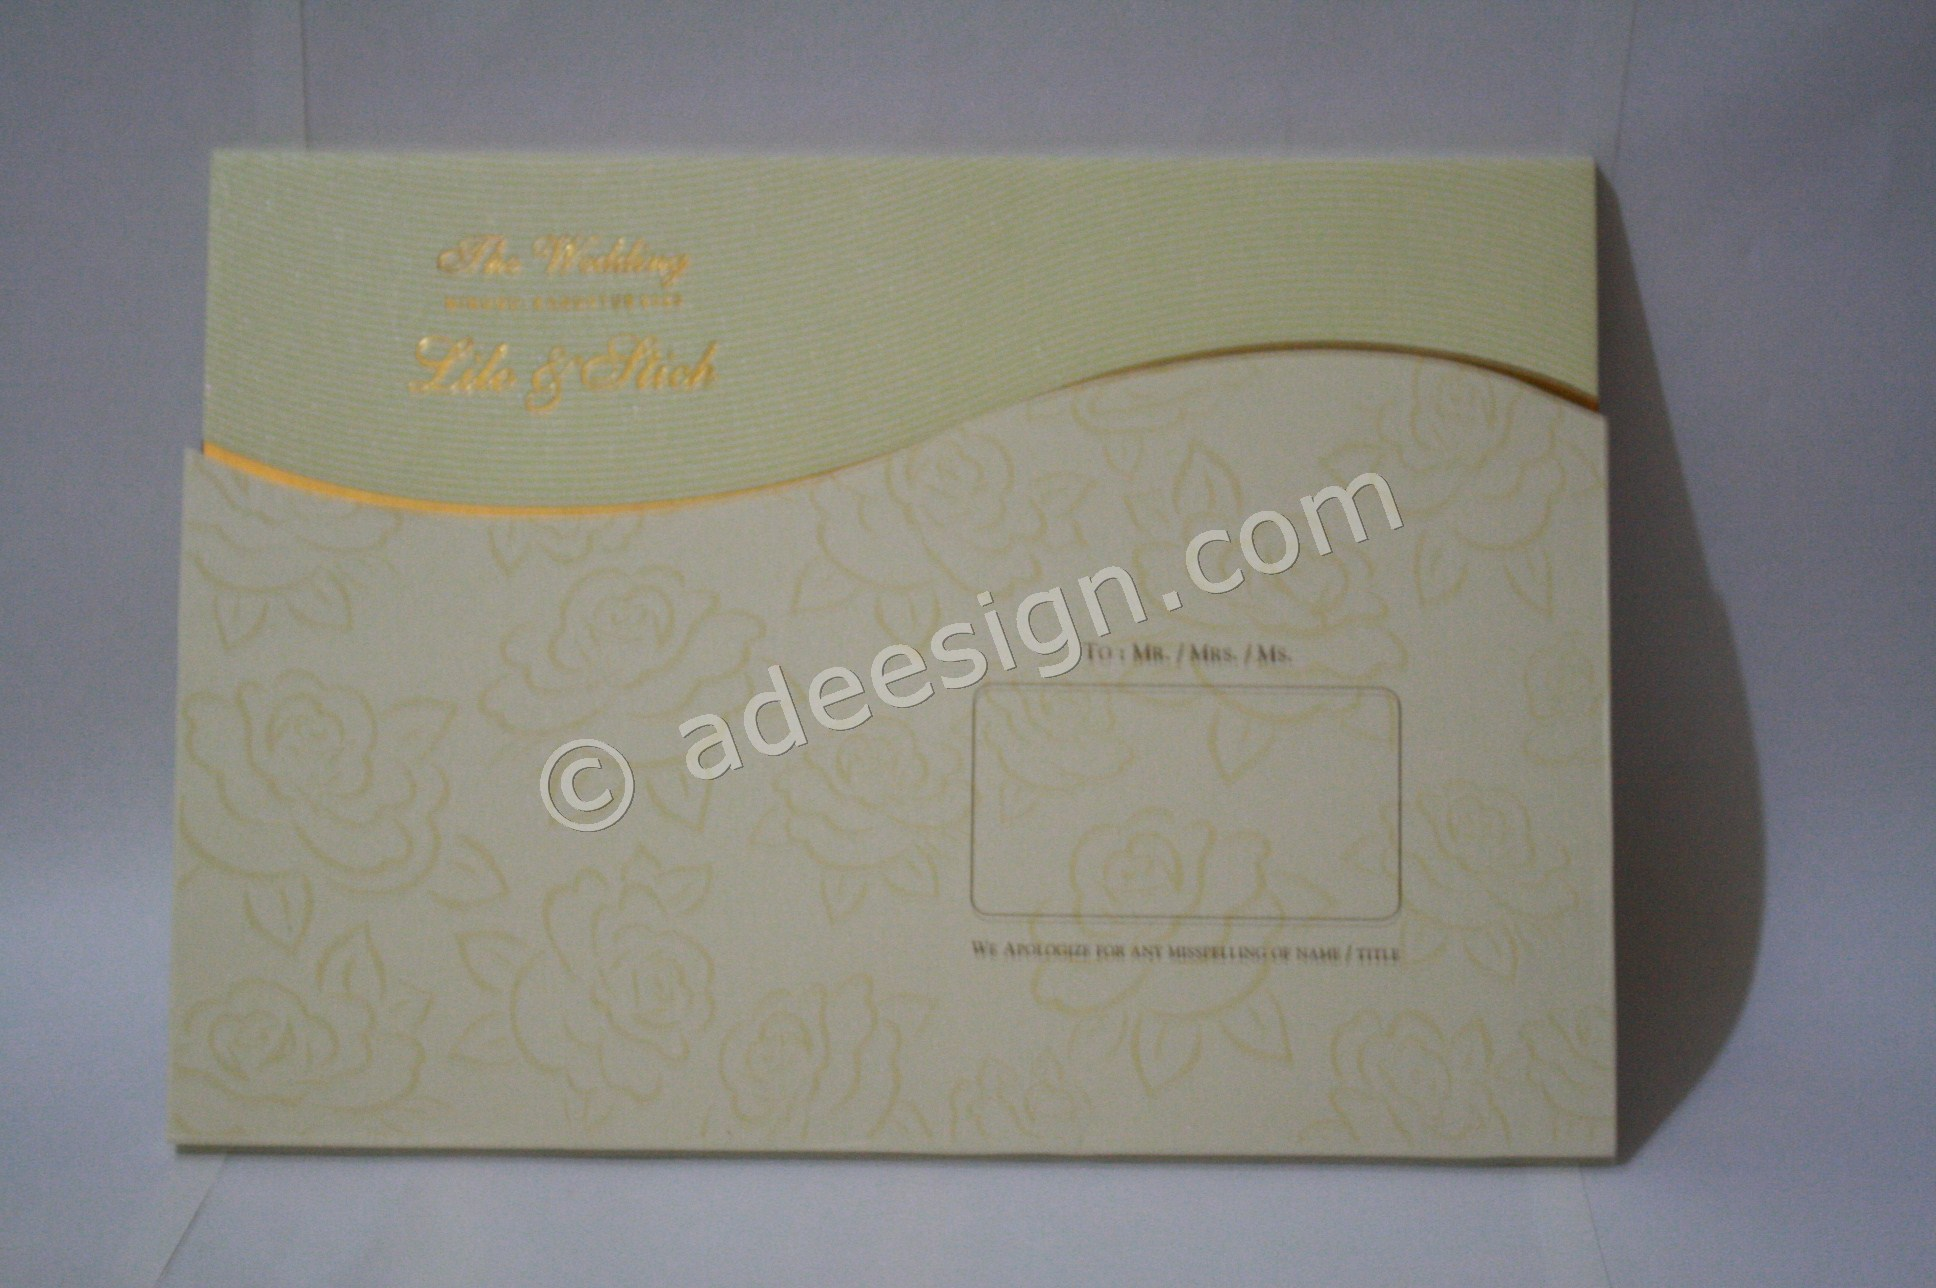 Undangan Pernikahan Hardcover Lilo dan Stich 2 - Membuat Wedding Invitations Simple di Dr. Sutomo